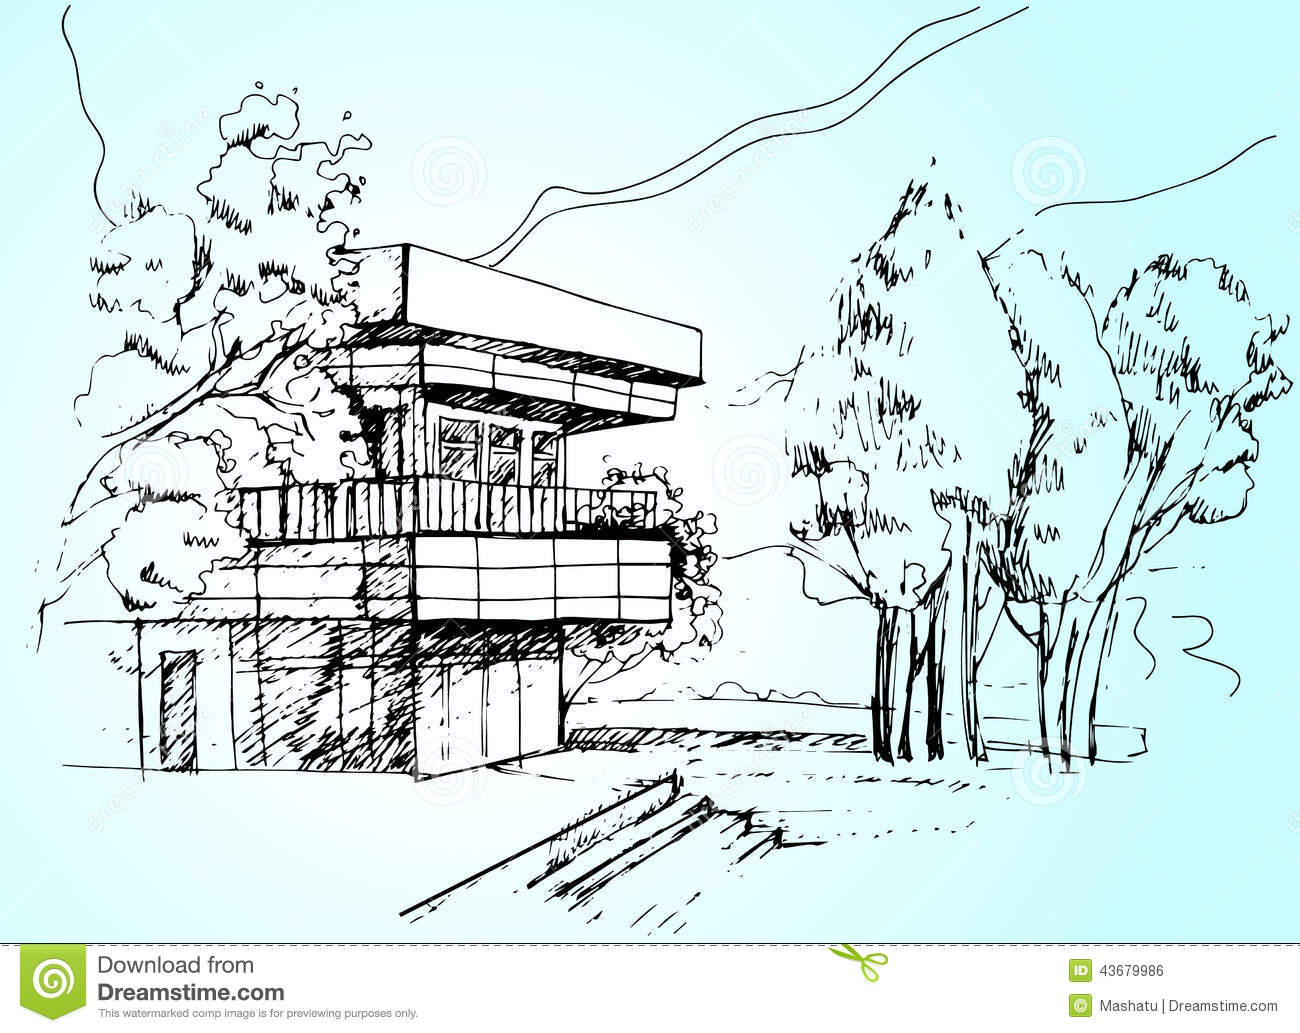 House Architecture Sketch sketch design of house royalty free stock image - image: 36944826